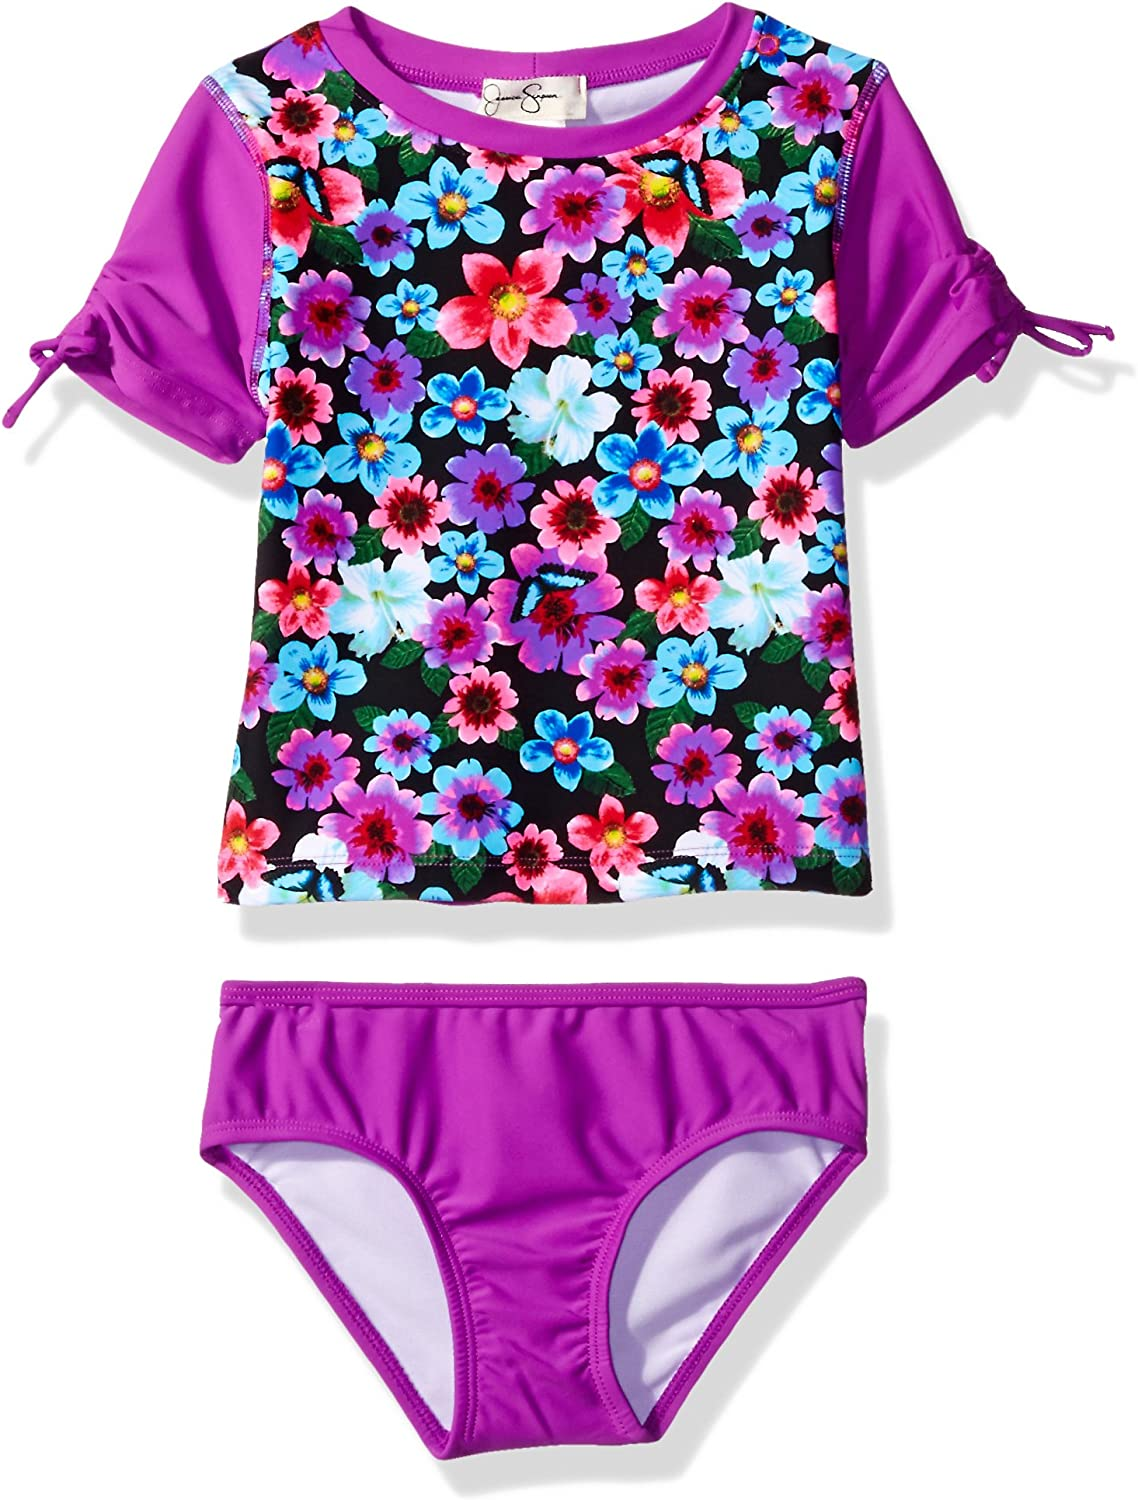 Jessica Simpson Girls Floral Rashguard Two Piece Swimsuit Set